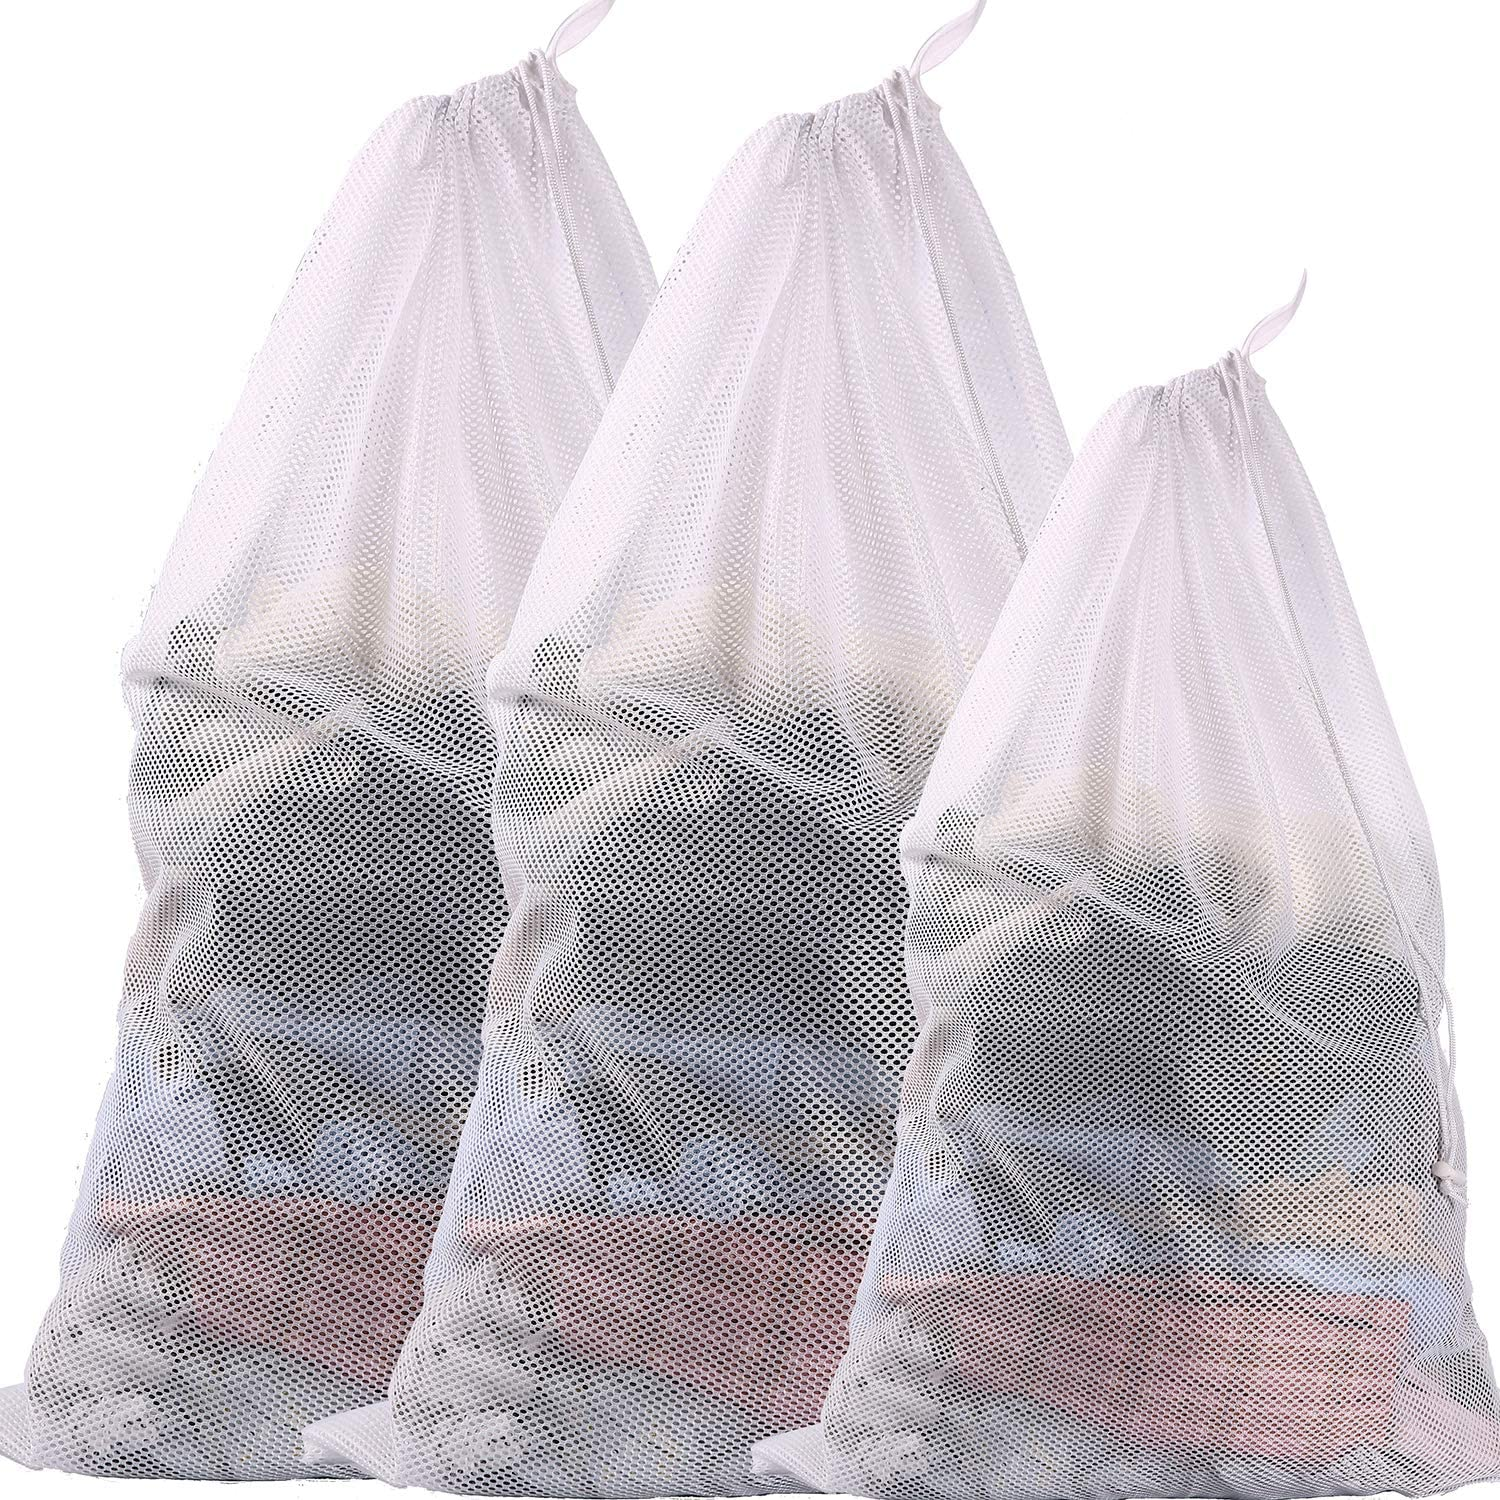 BAGAIL Set of 3 Sturdy Coarse Mesh Laundry Bag - 2 Extra Large&1 Large with Drawstring Closure for College, Dorm and Apartment Dwellers(3 Set Coarse Mesh)